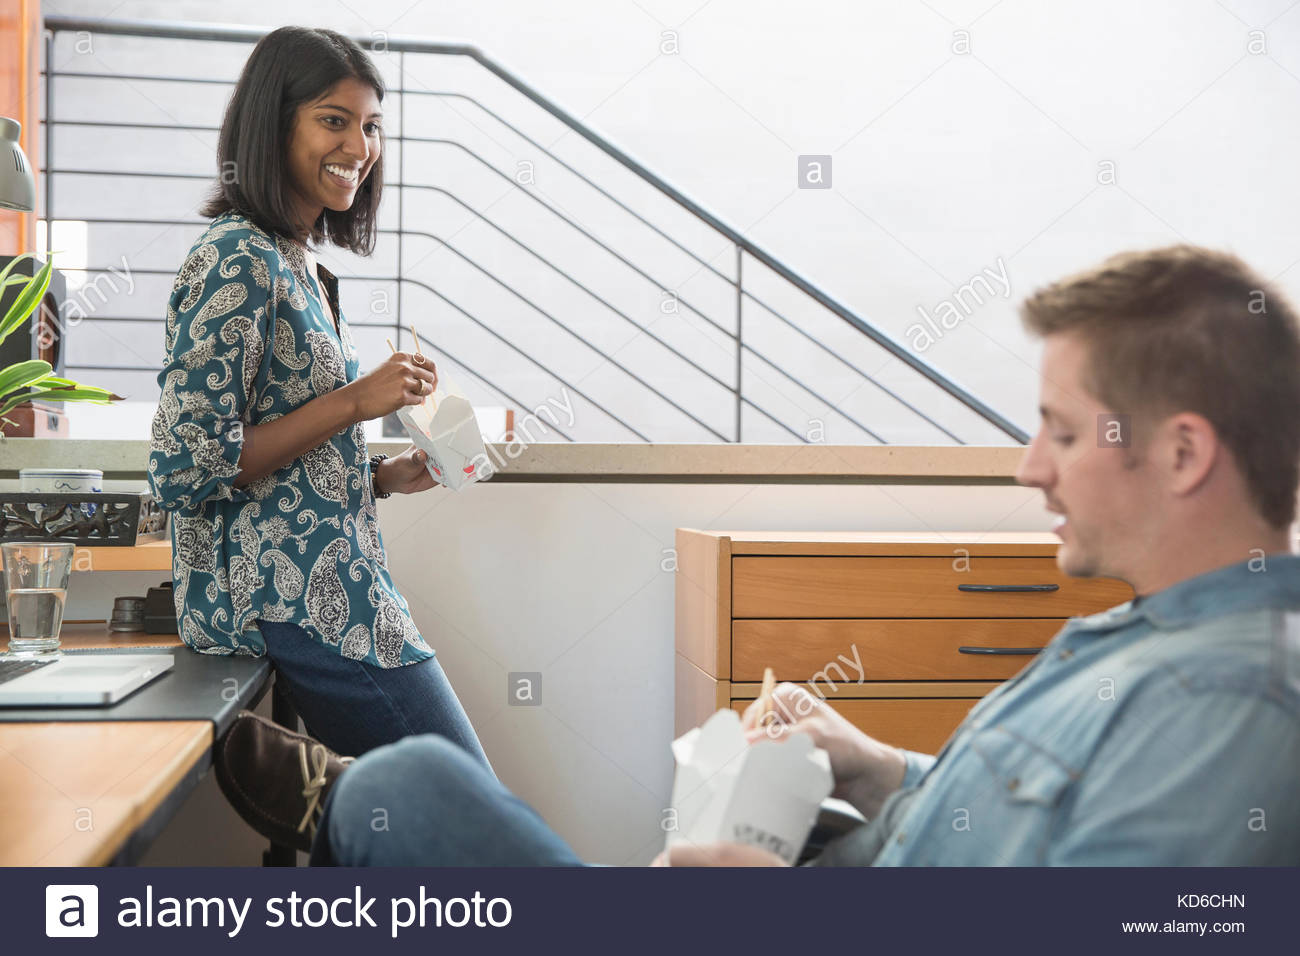 Couple eating Chinese takeout food in home office - Stock Image